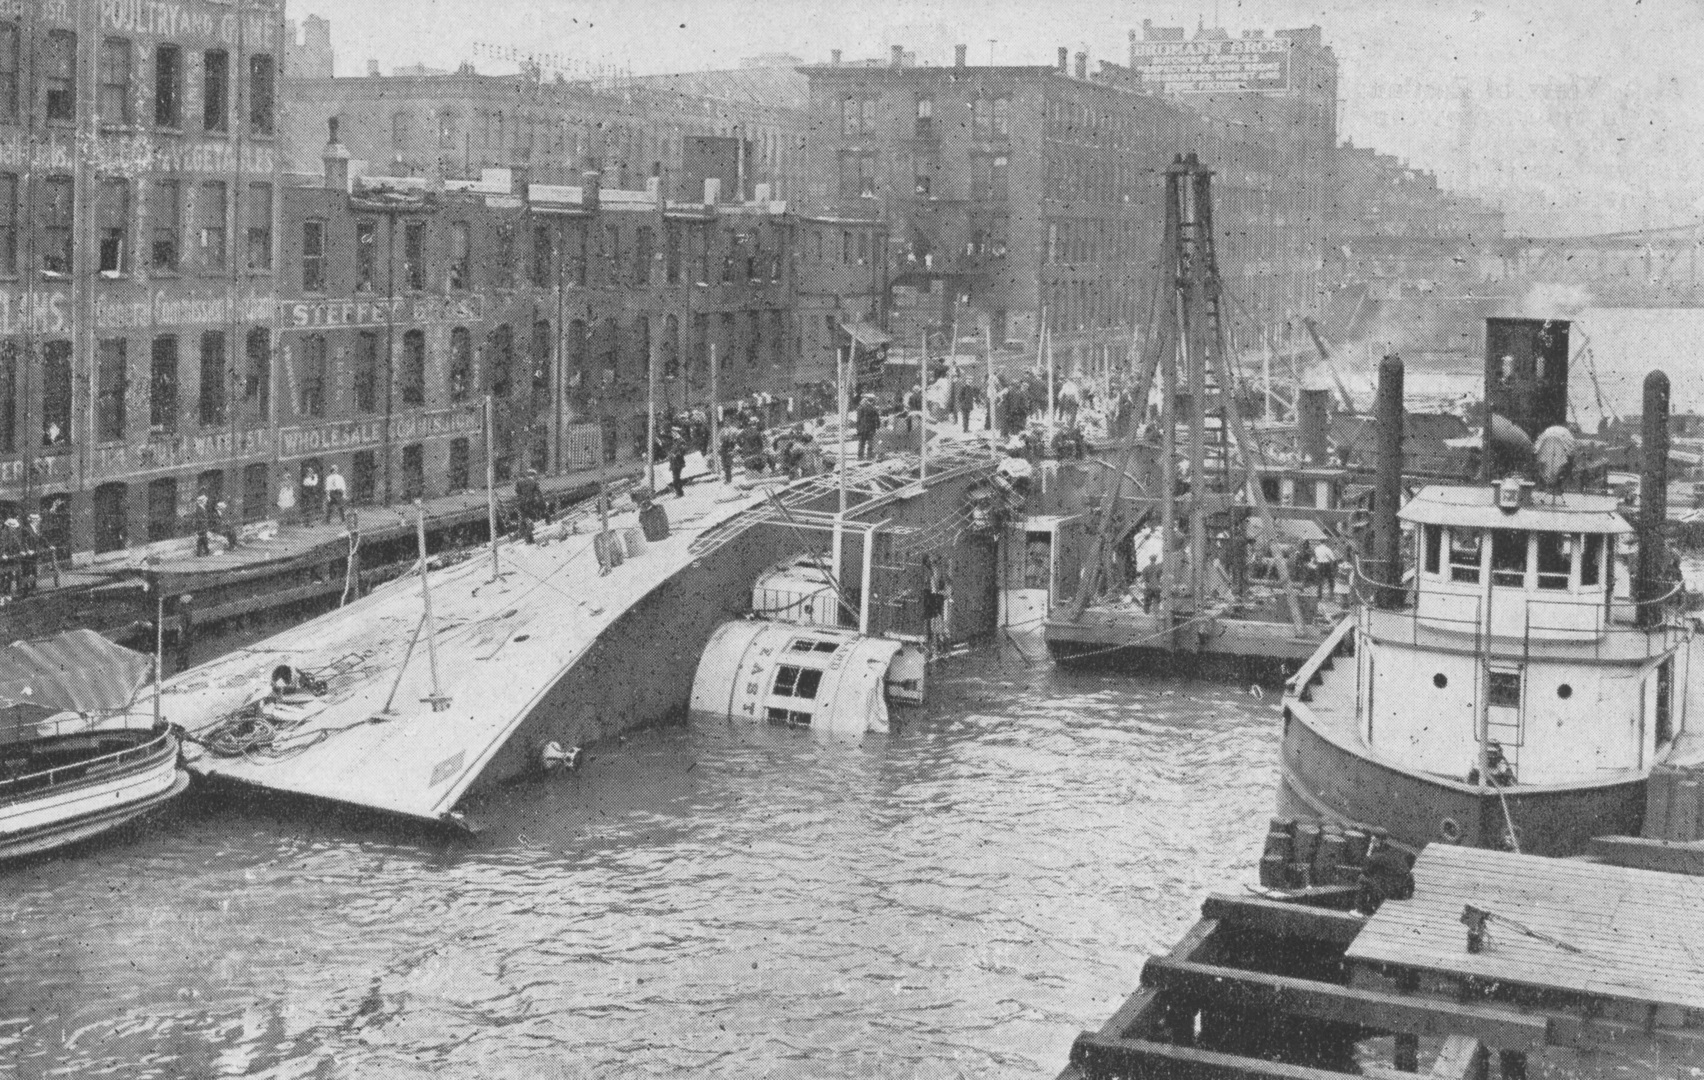 S.S. Eastland Disaster Location paranormal